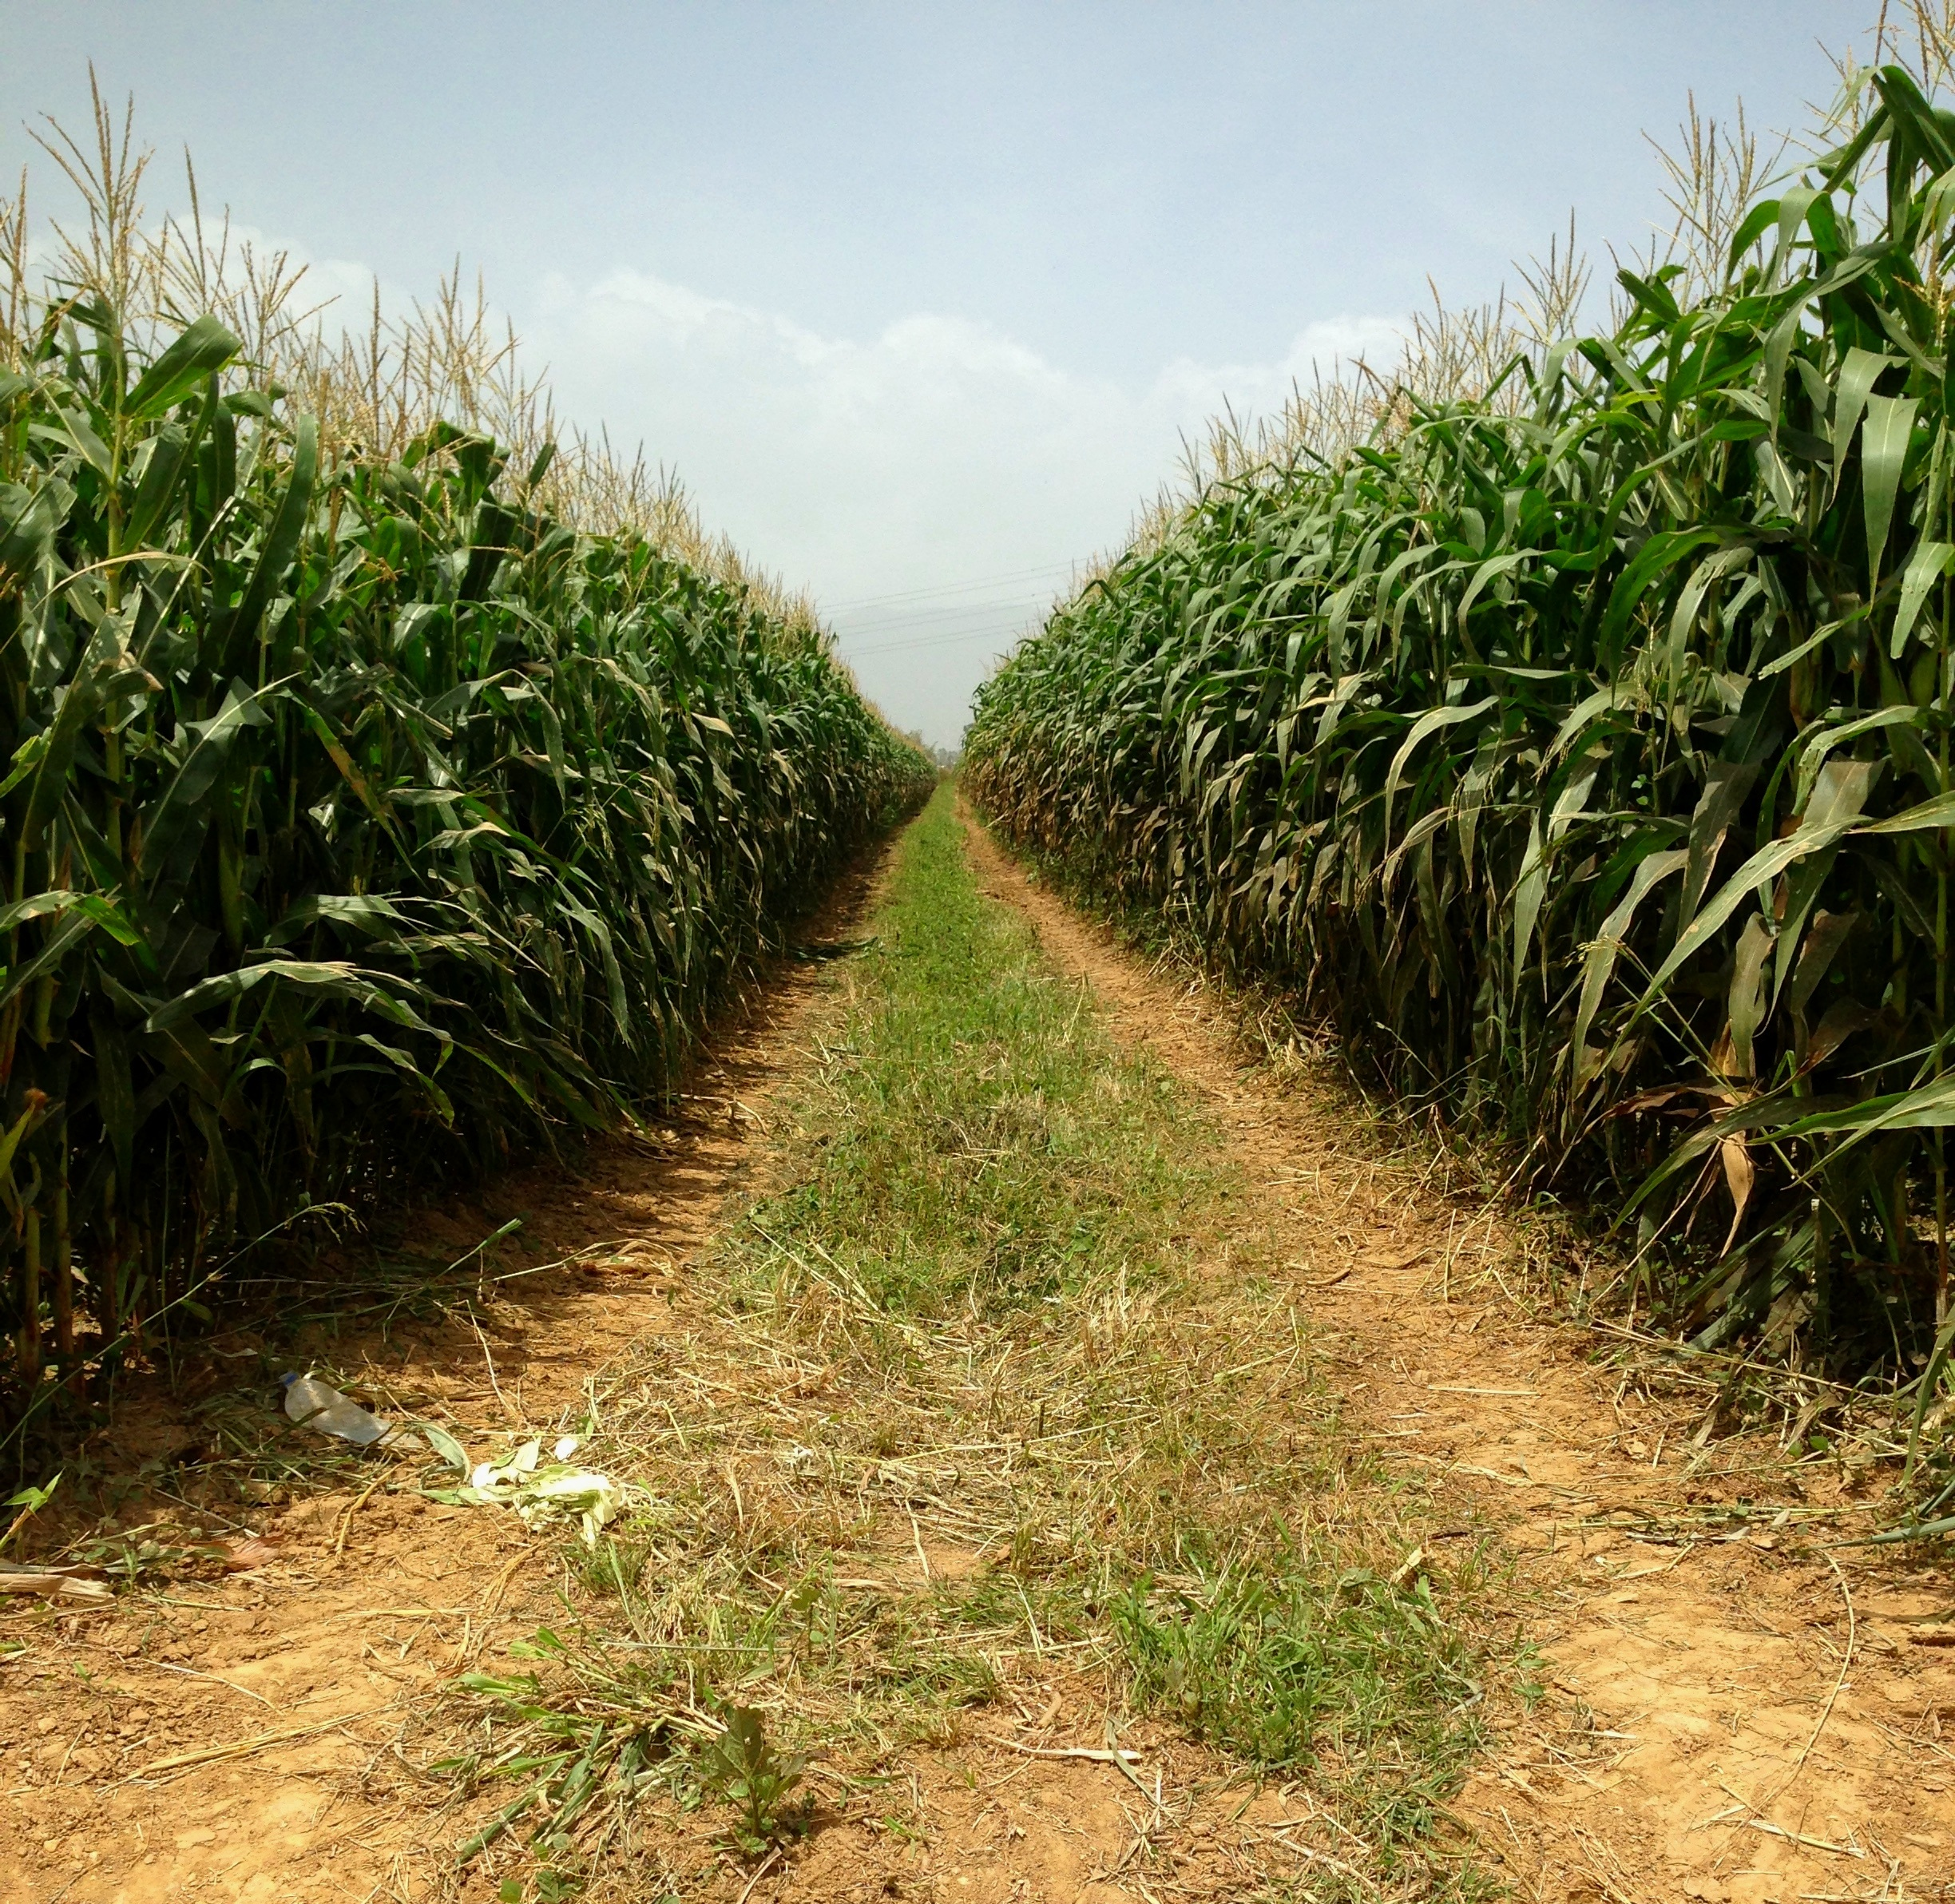 Rows of corn, Warrenville, Cunupia